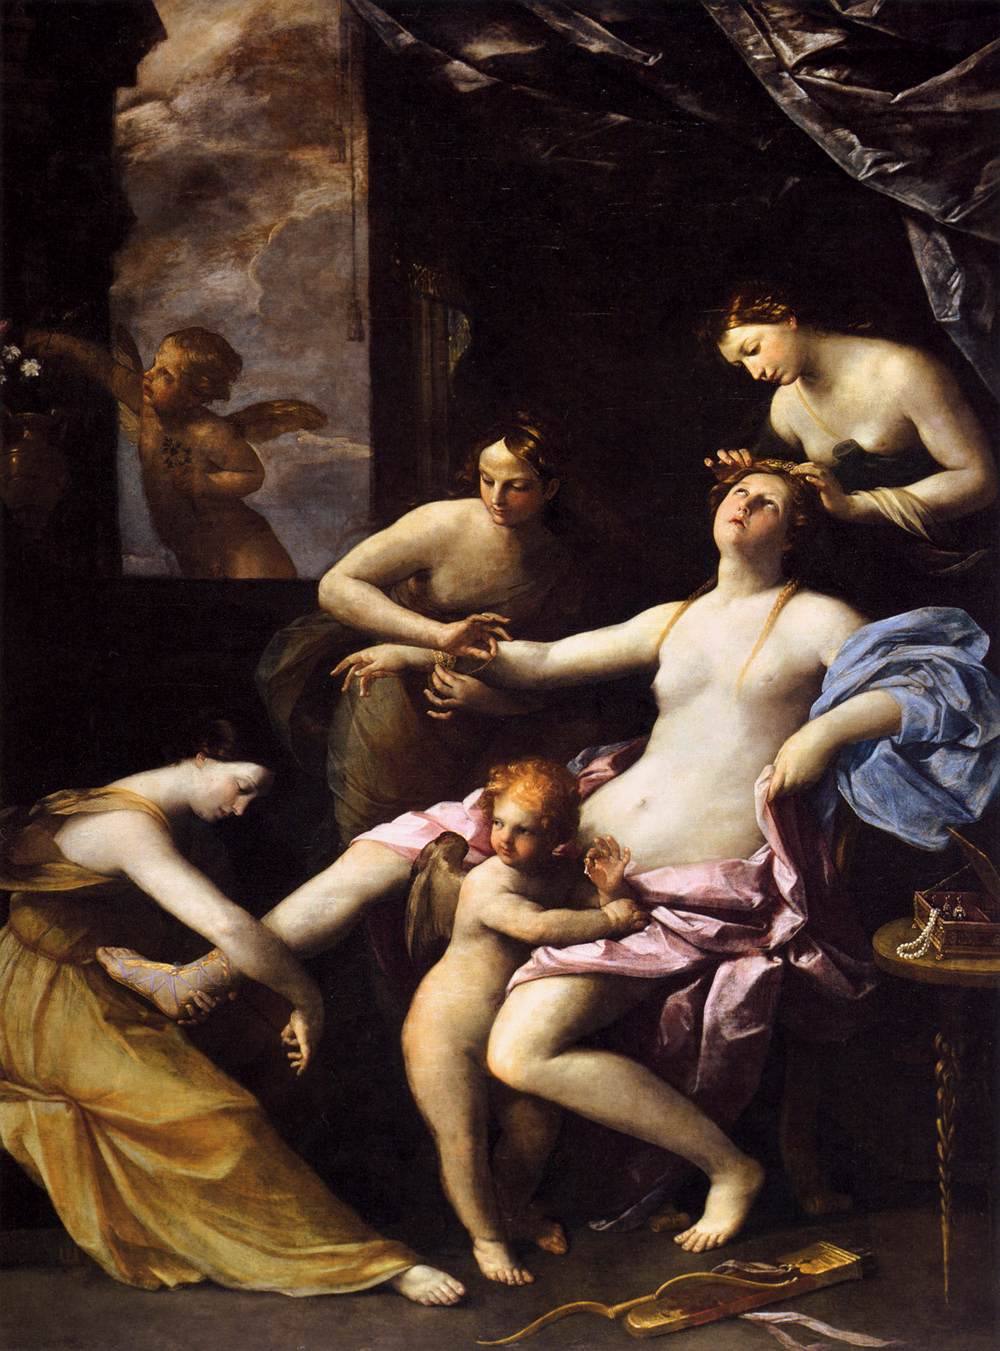 http://uploads5.wikipaintings.org/images/guido-reni/the-toilet-of-venus-1623.jpg